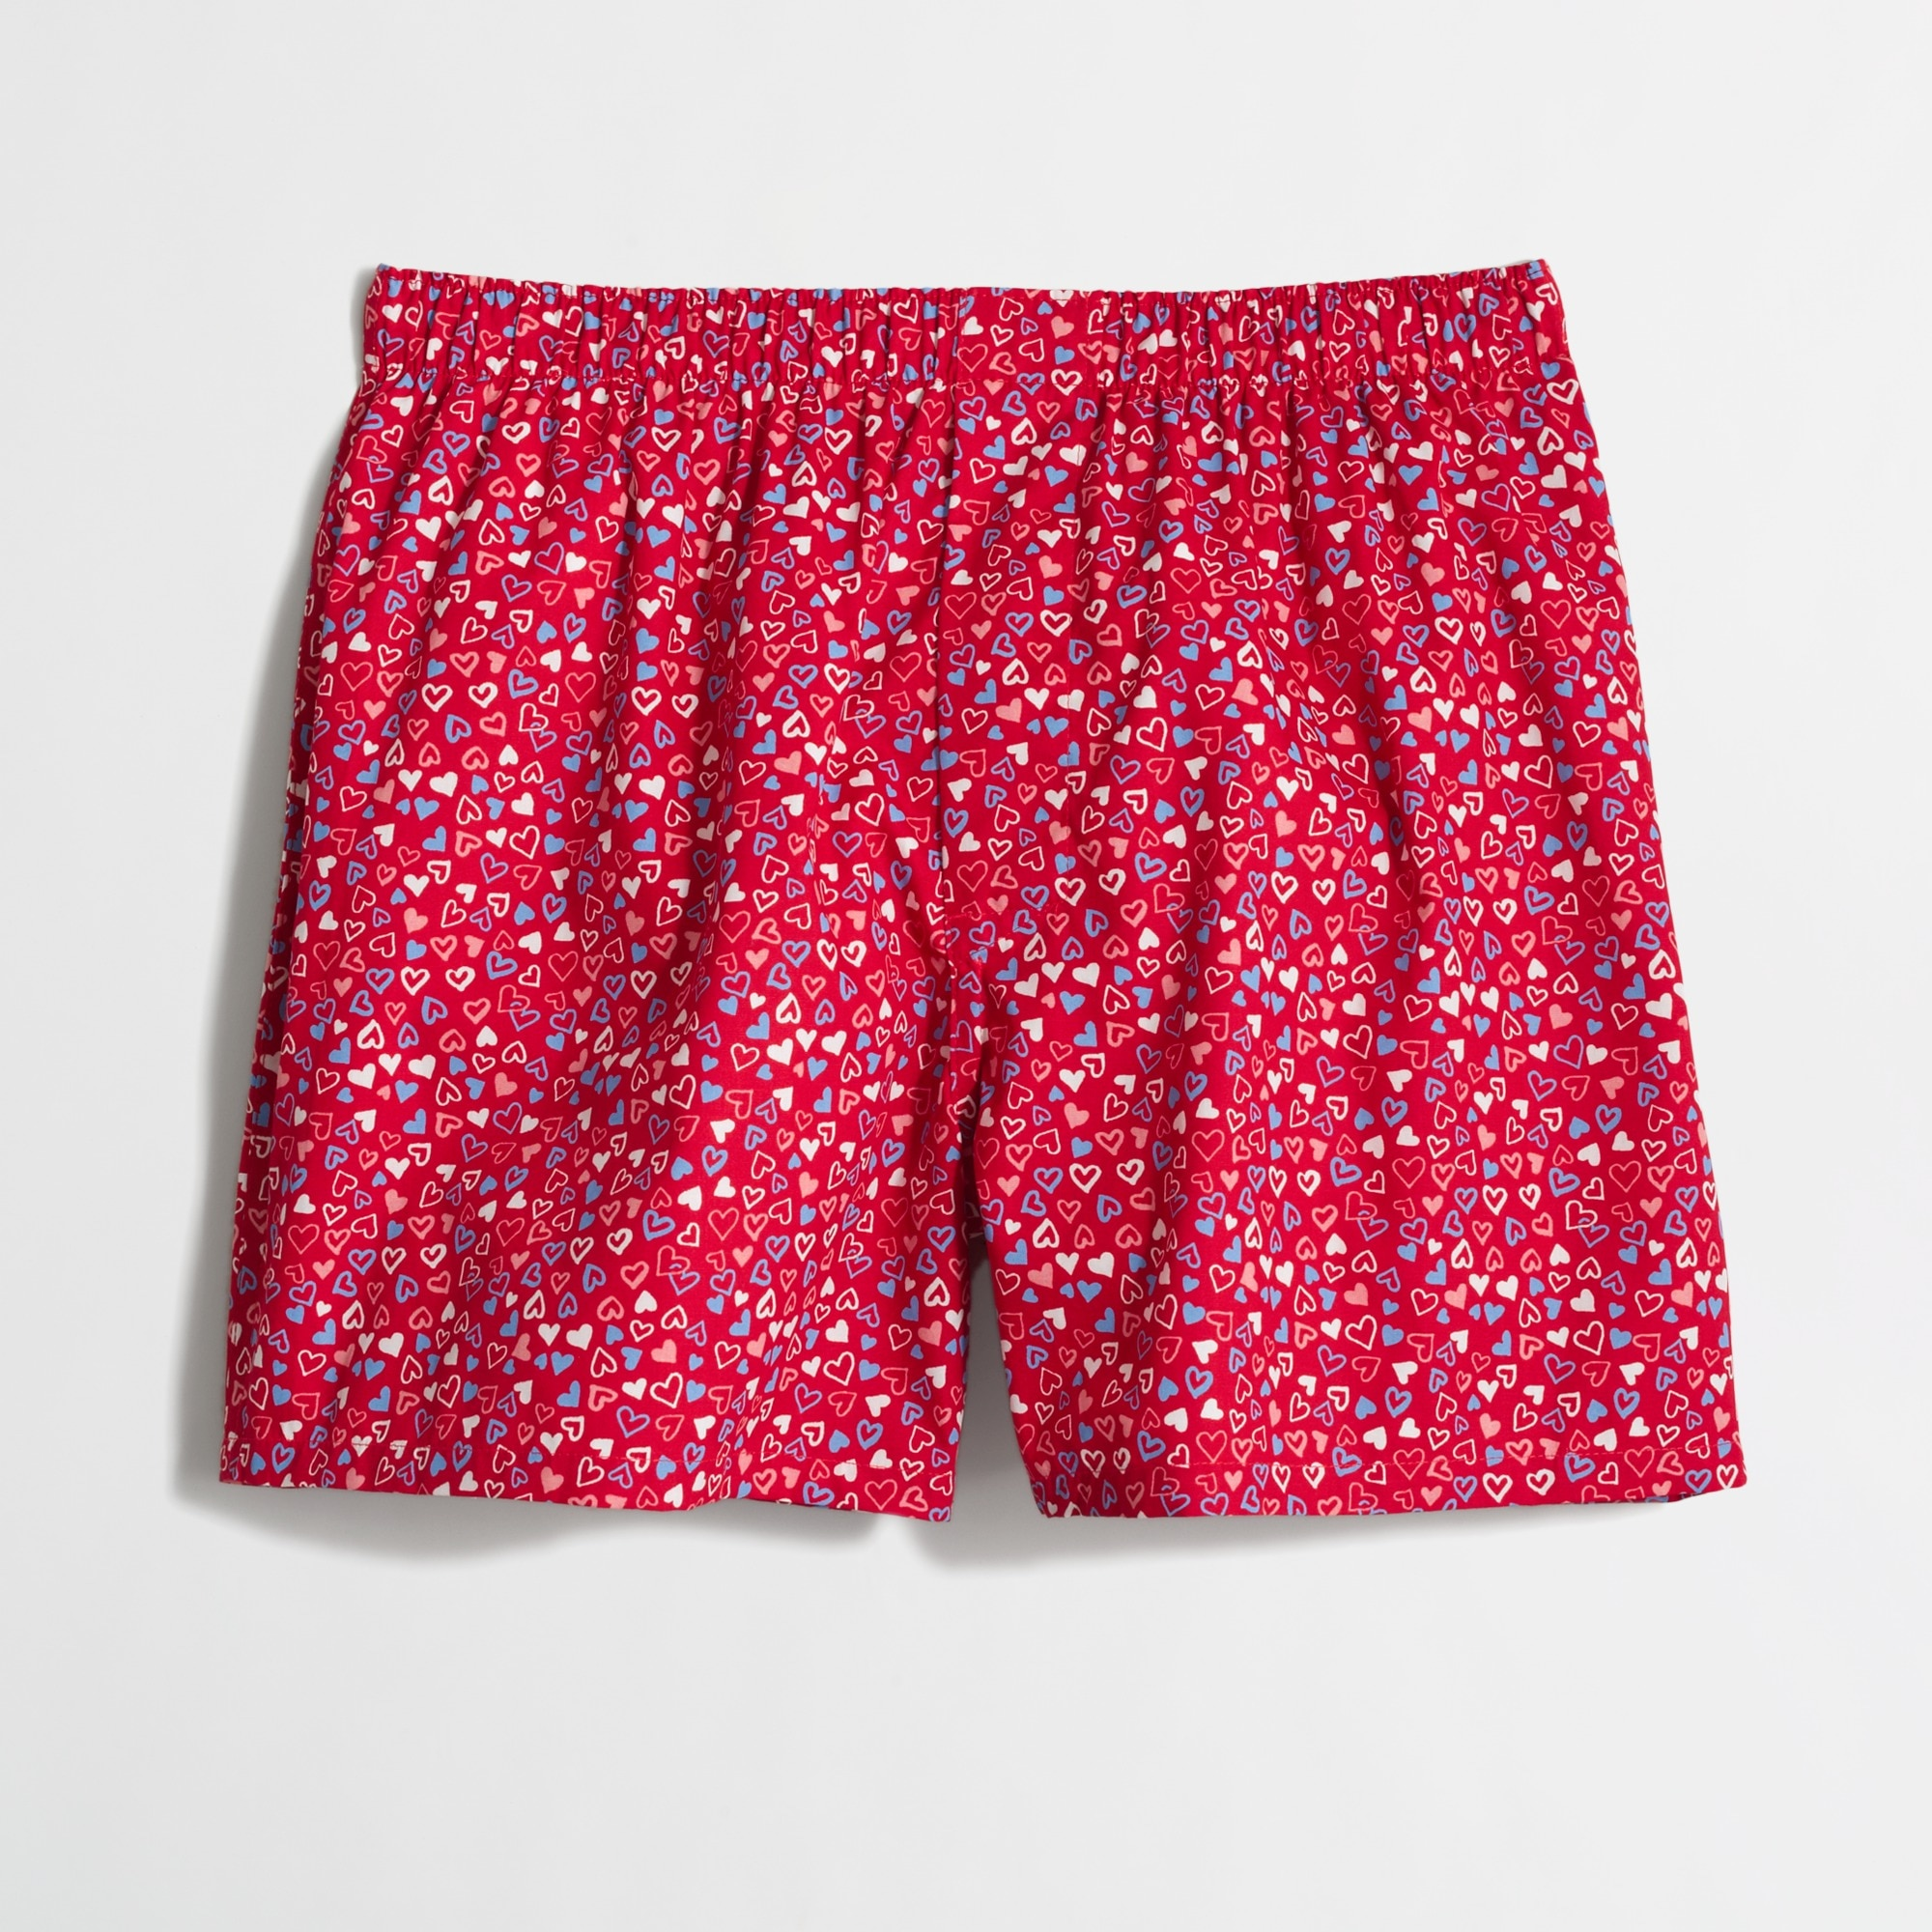 factory tossed hearts boxers : factorymen boxers